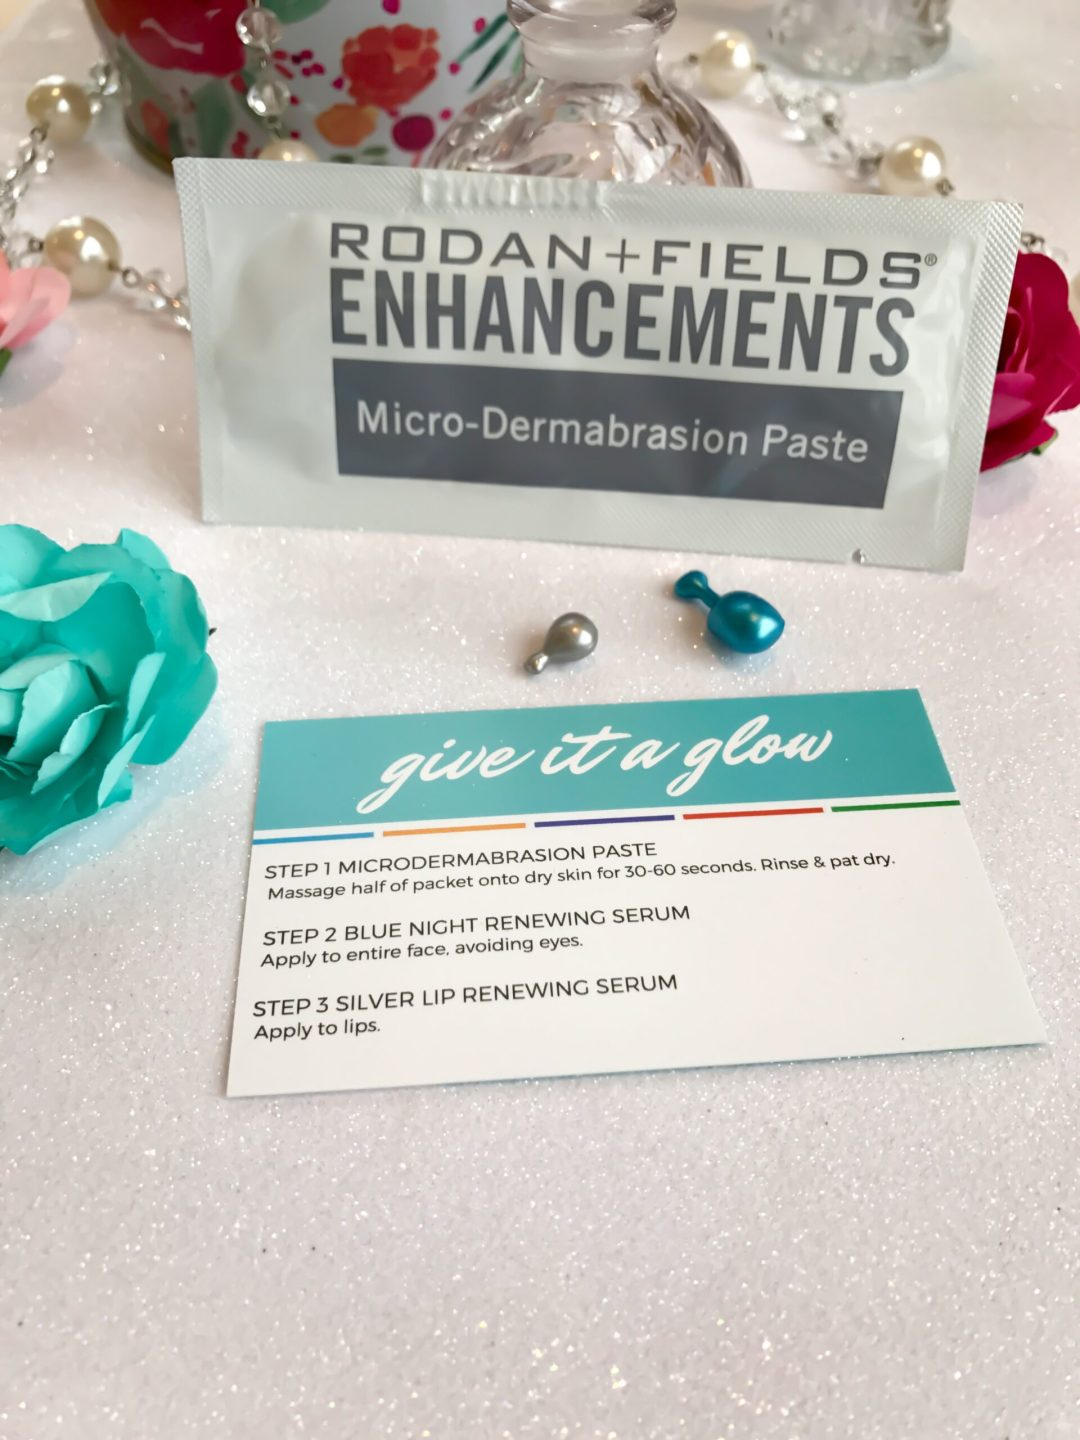 Rodan + Fields Give It a Glow Mini Facial